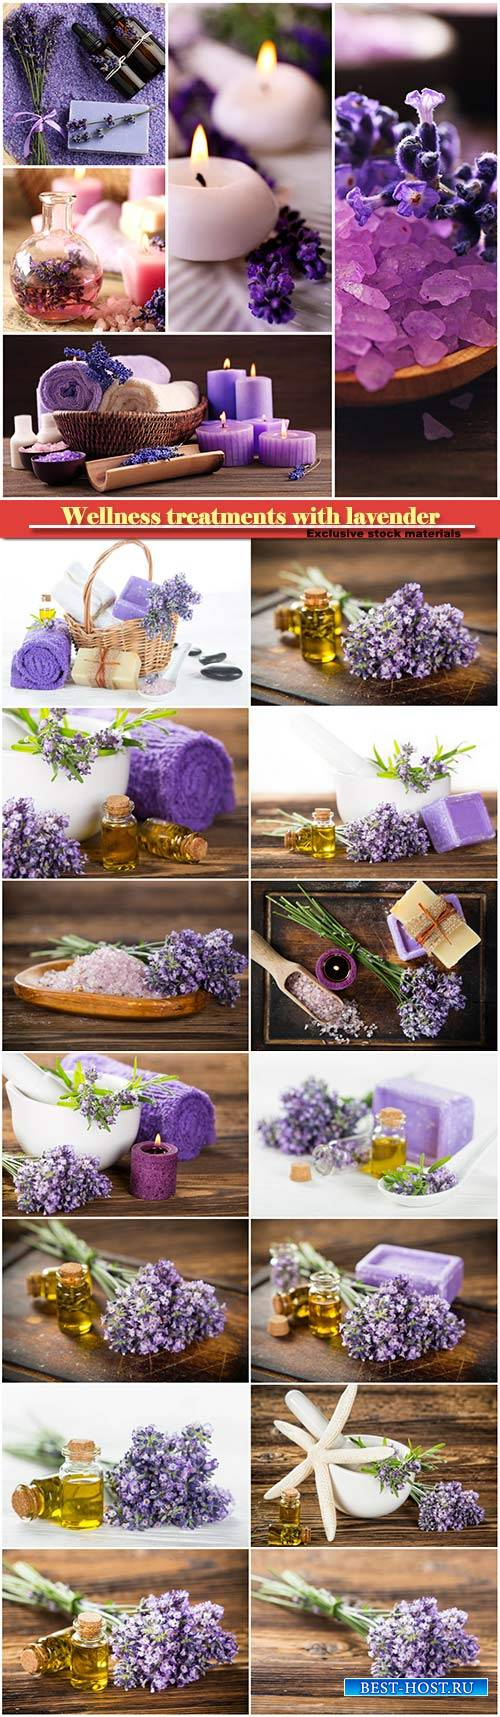 Wellness treatments with lavender flowers on wooden table, spa still-life